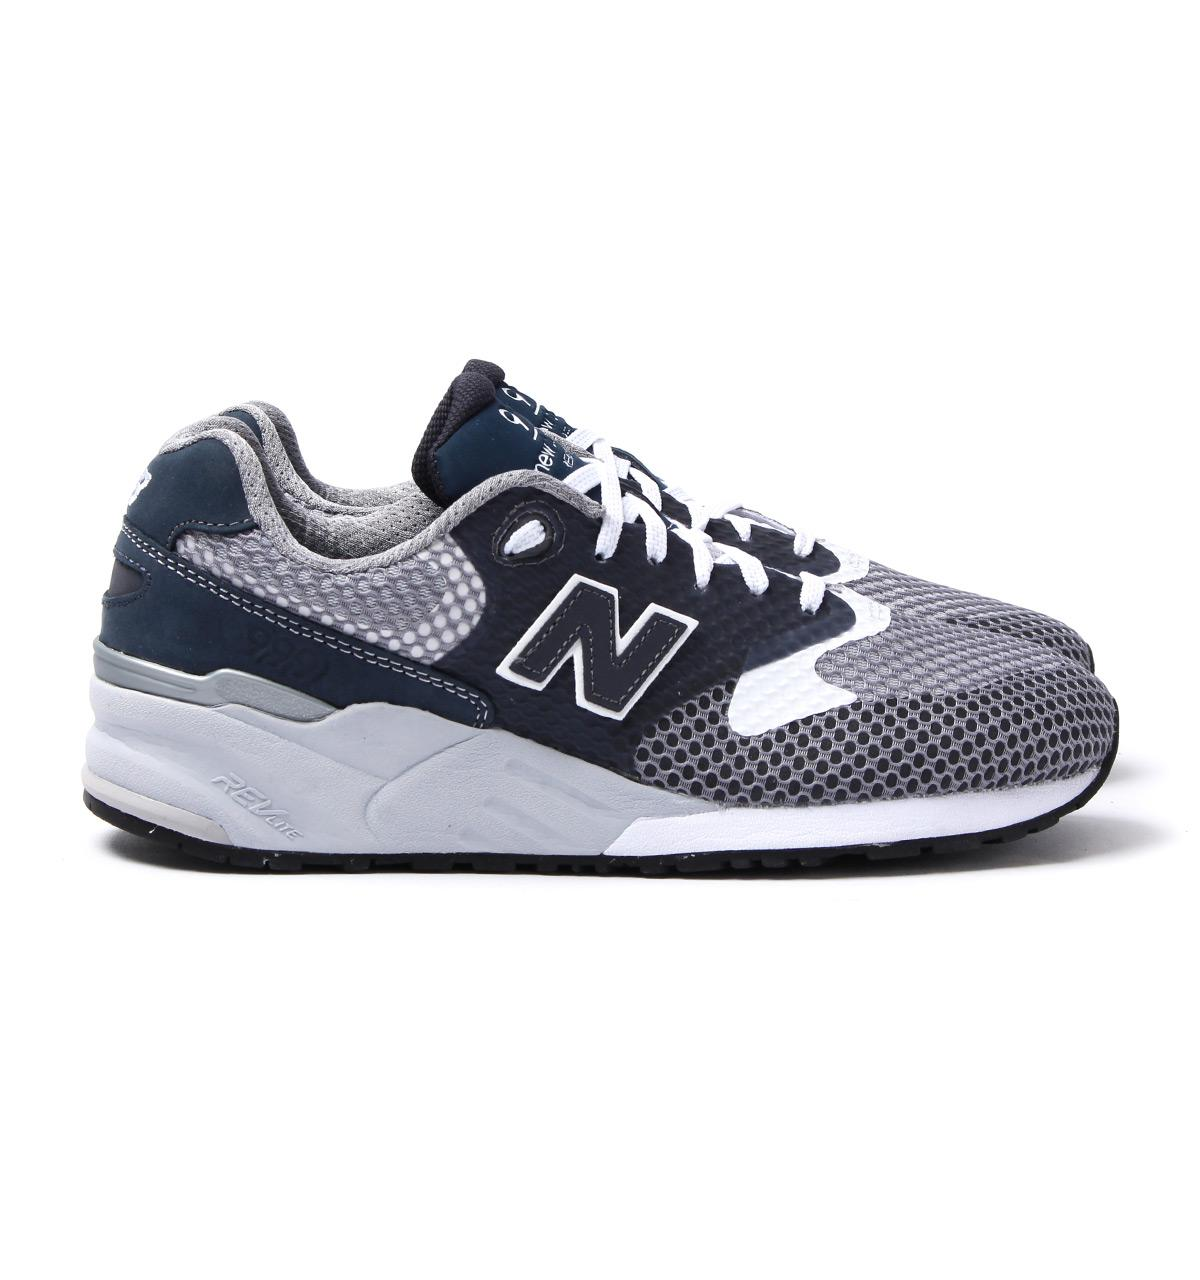 New Balance Synthetic 999 Navy & Grey Re engineered Mesh